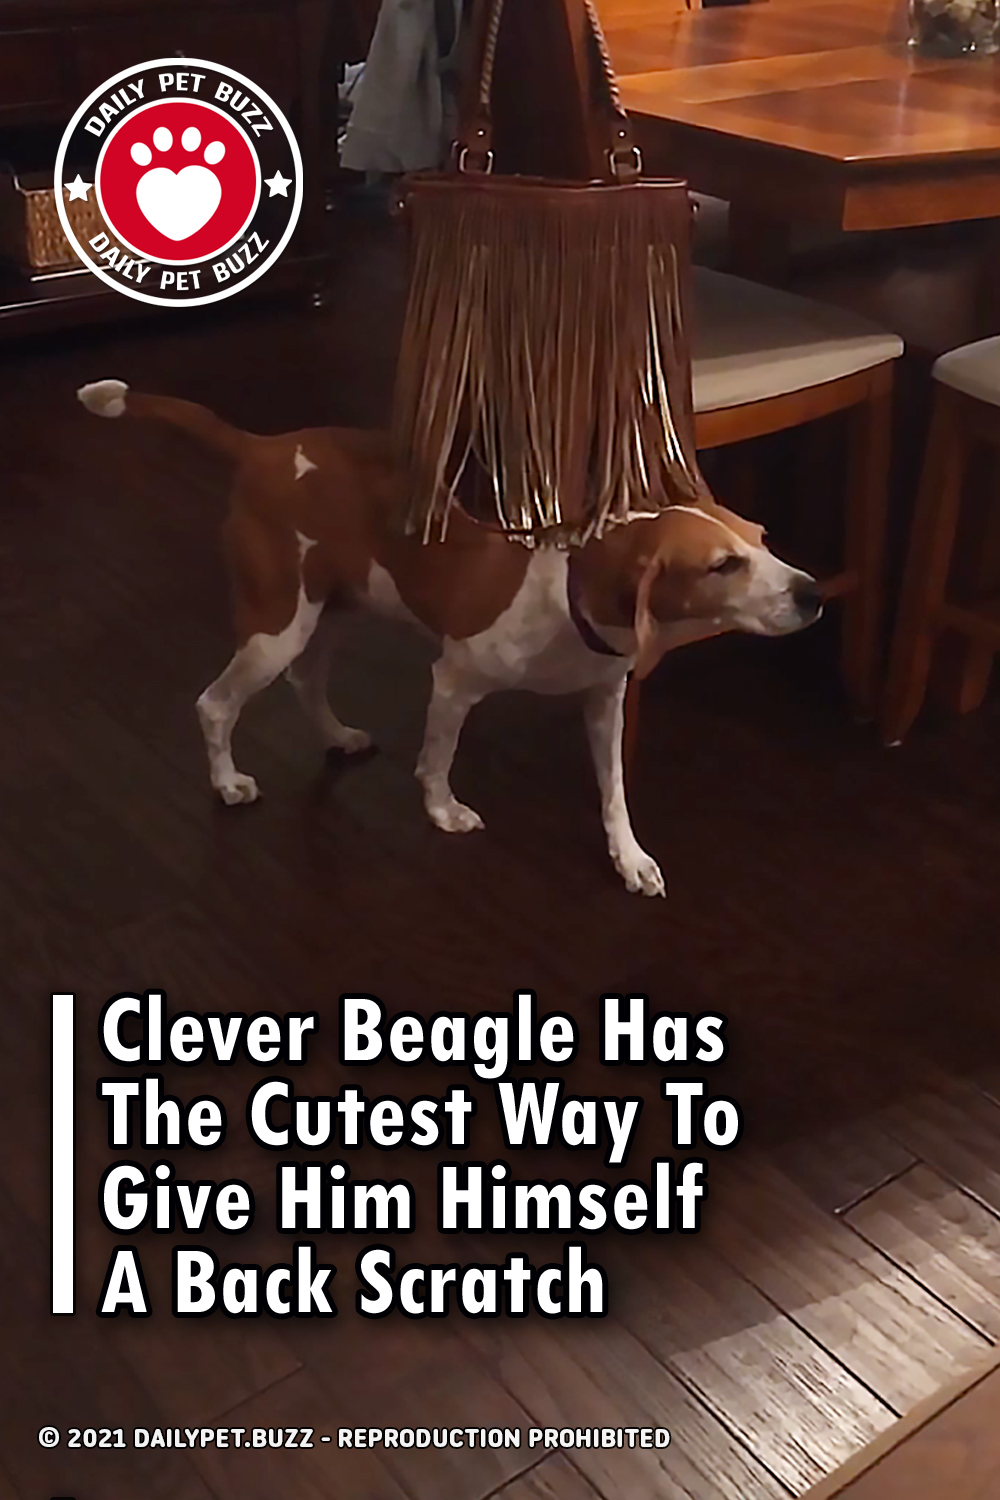 Clever Beagle Has The Cutest Way To Give Him Himself A Back Scratch